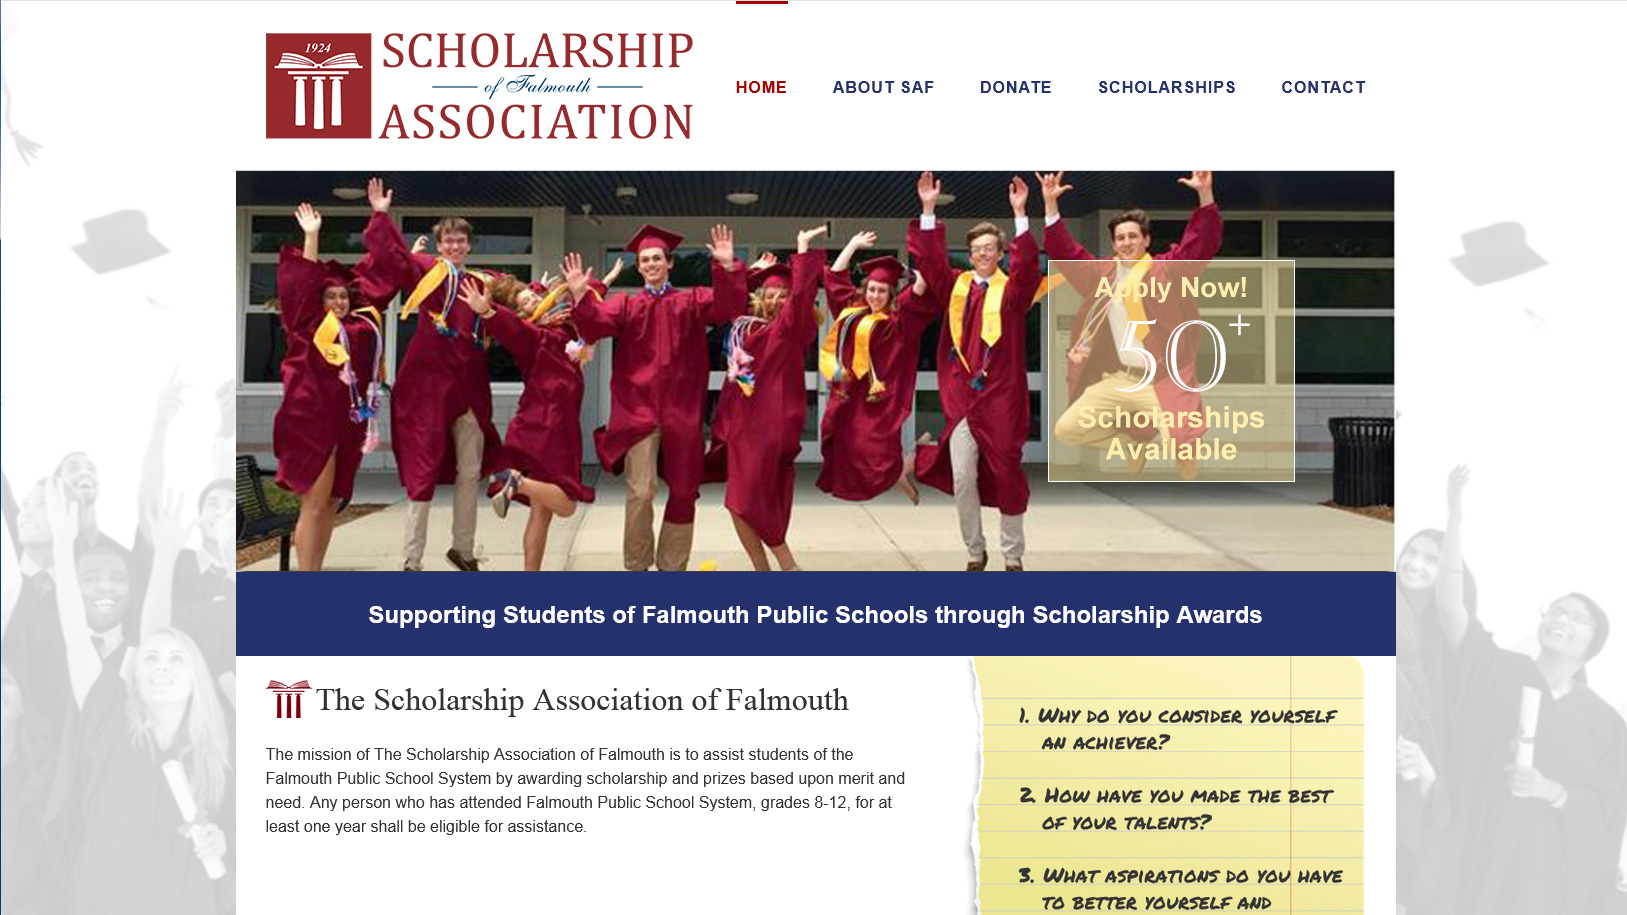 Portfolio Scholarship Association of Falmouth website design